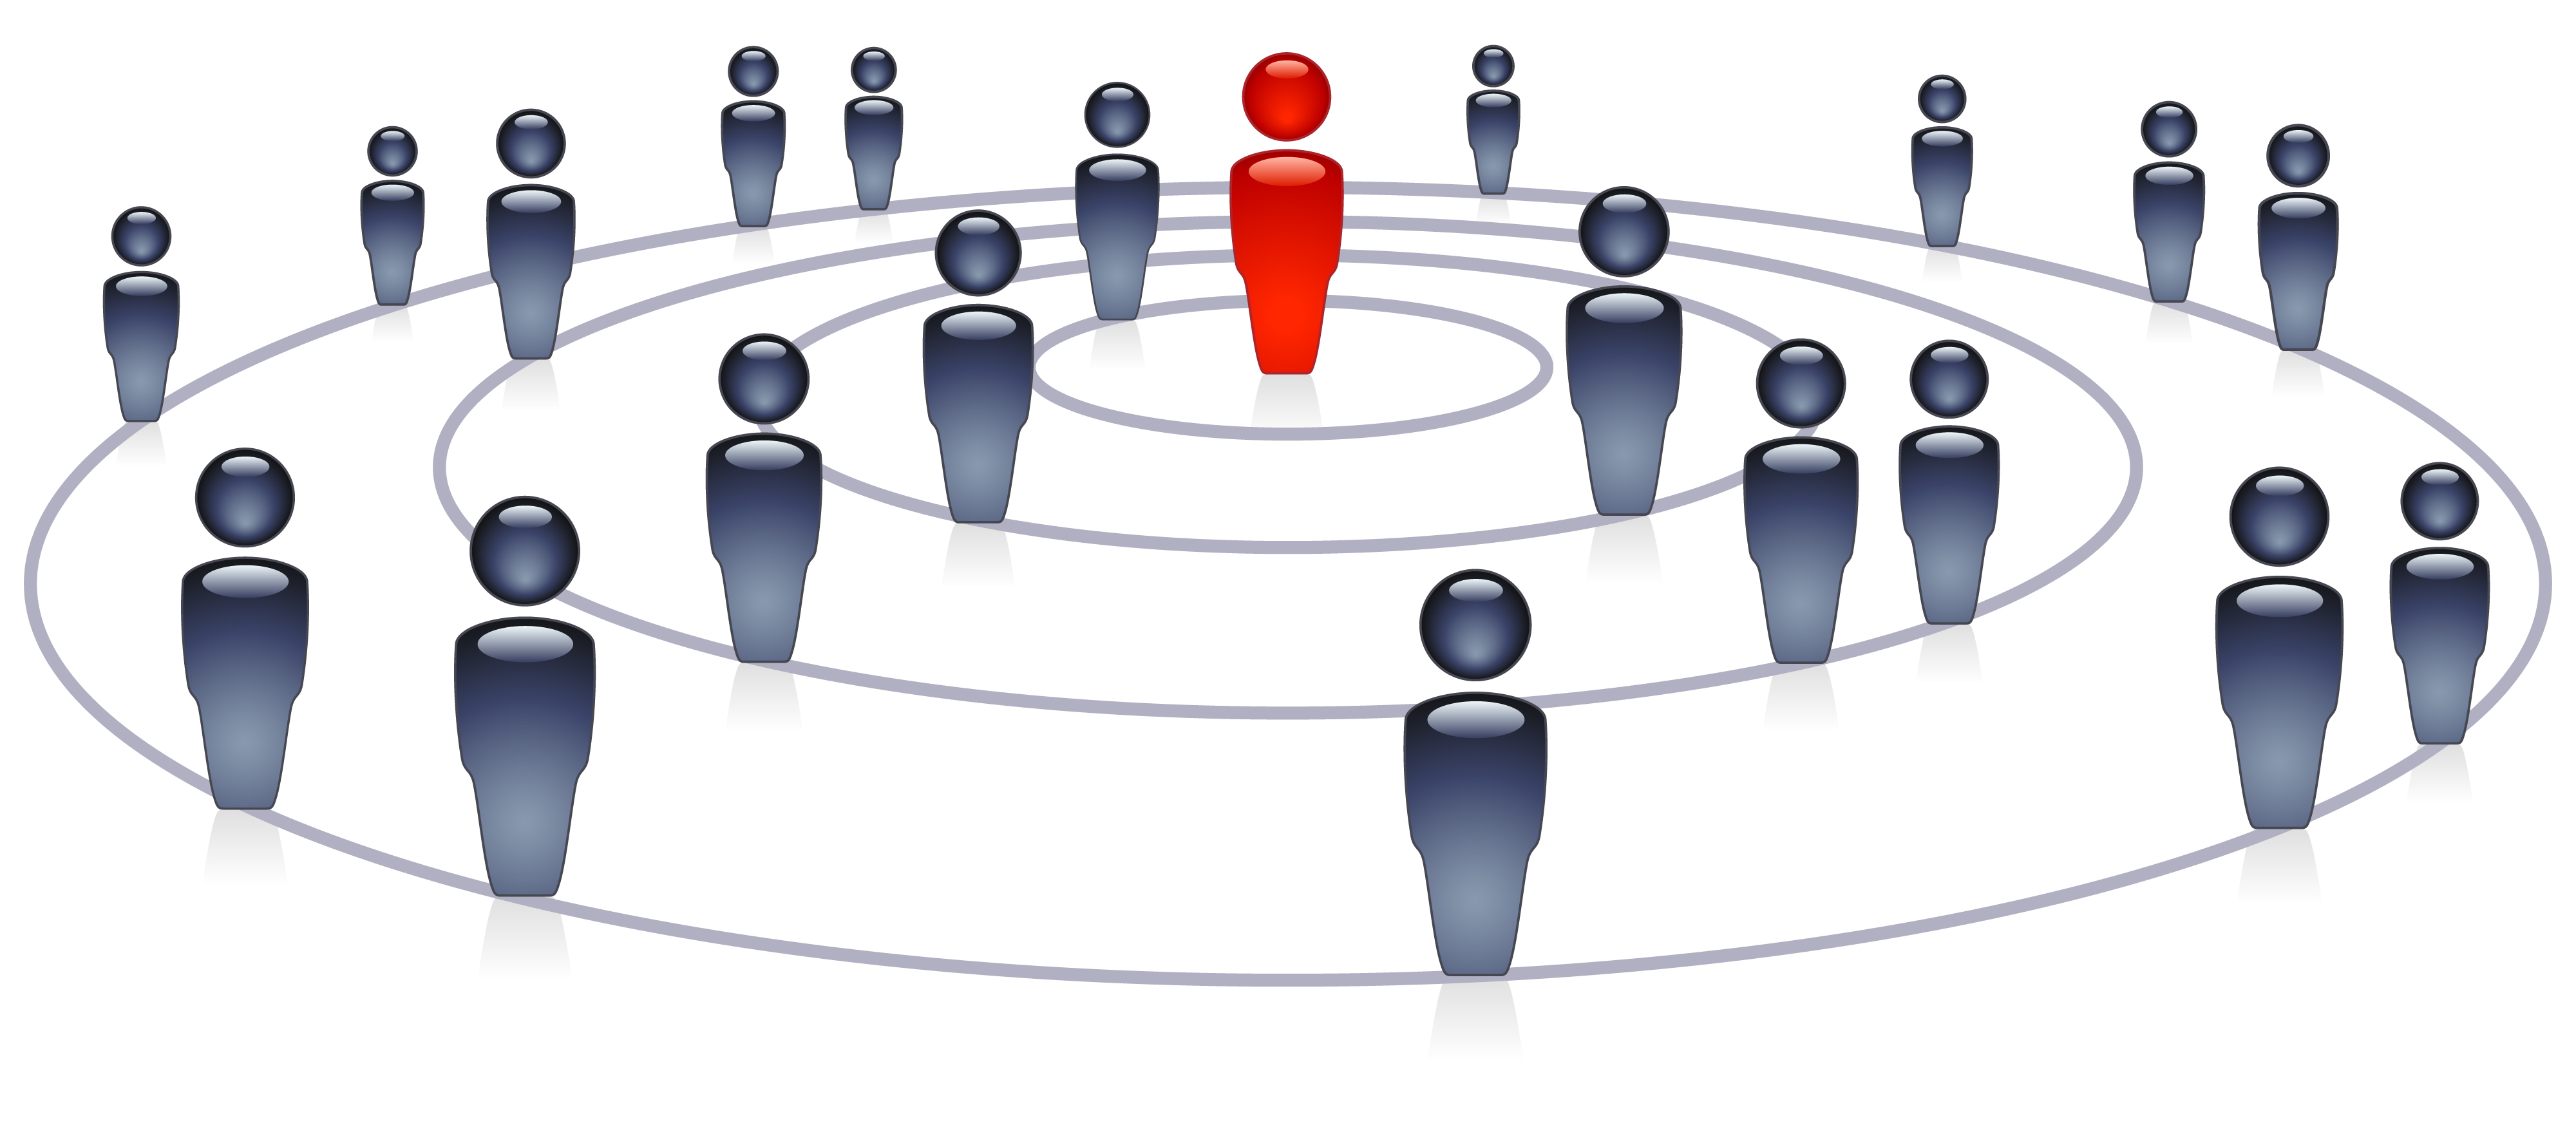 Increase serendipitous connections with crowdsourcing